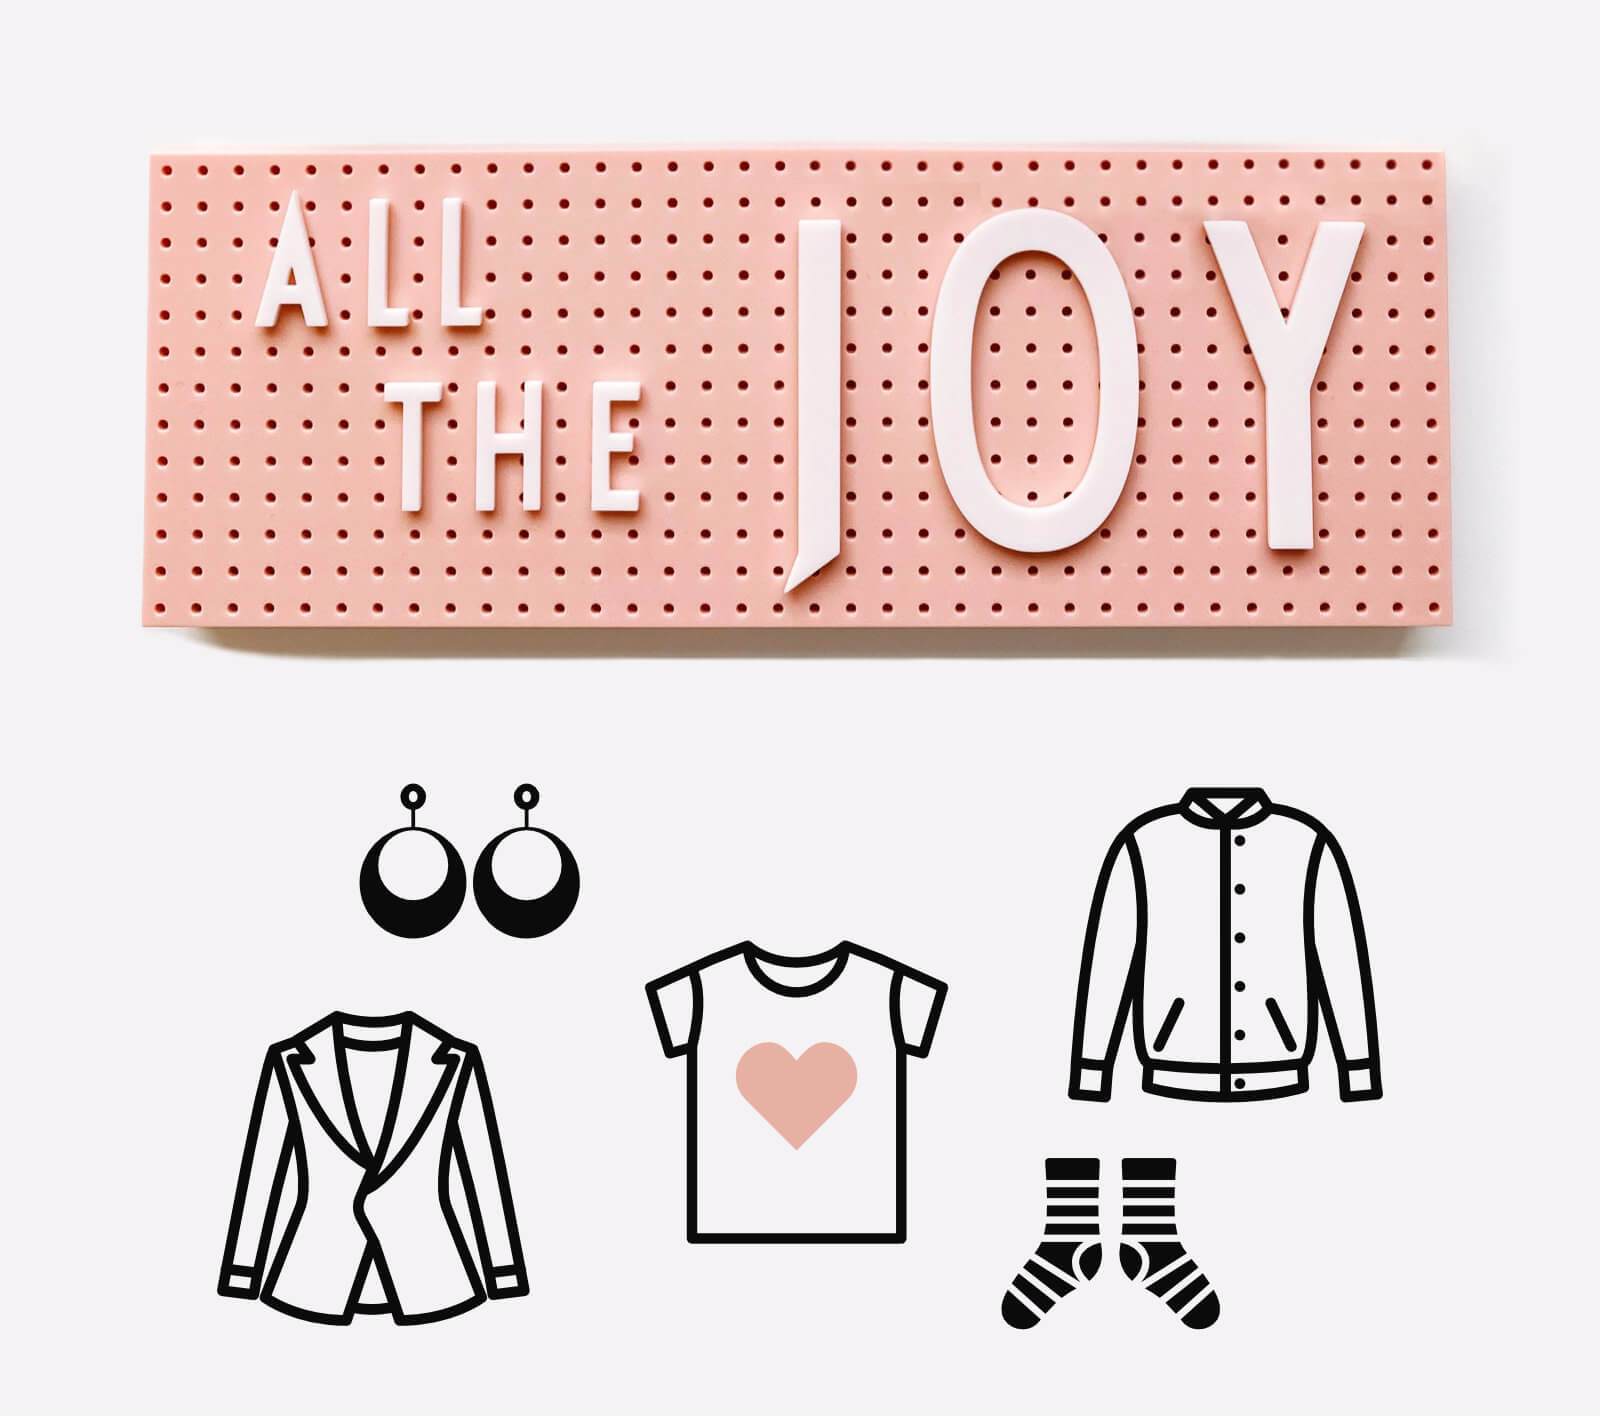 KonMari Method Of Tidying. All The Joy Letter Board Display With Fun Clothing Icons Floating Below It